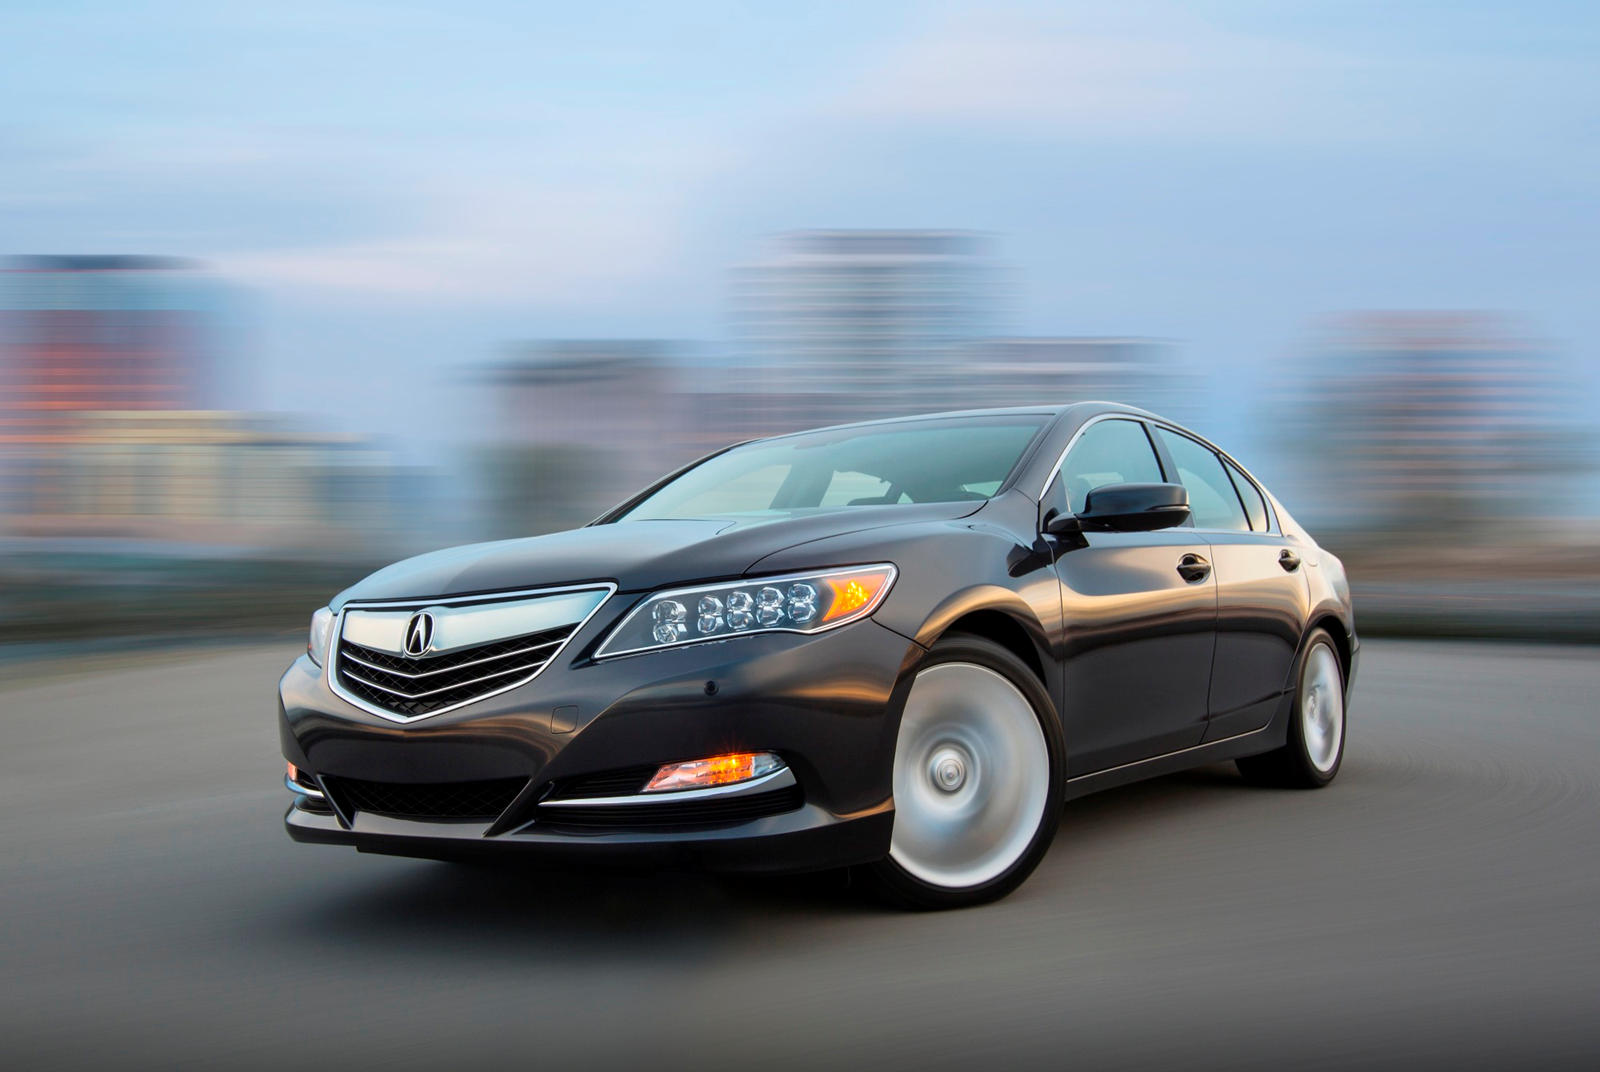 2016 Acura Rlx Review Trims Specs Price New Interior Features Exterior Design And Specifications Carbuzz